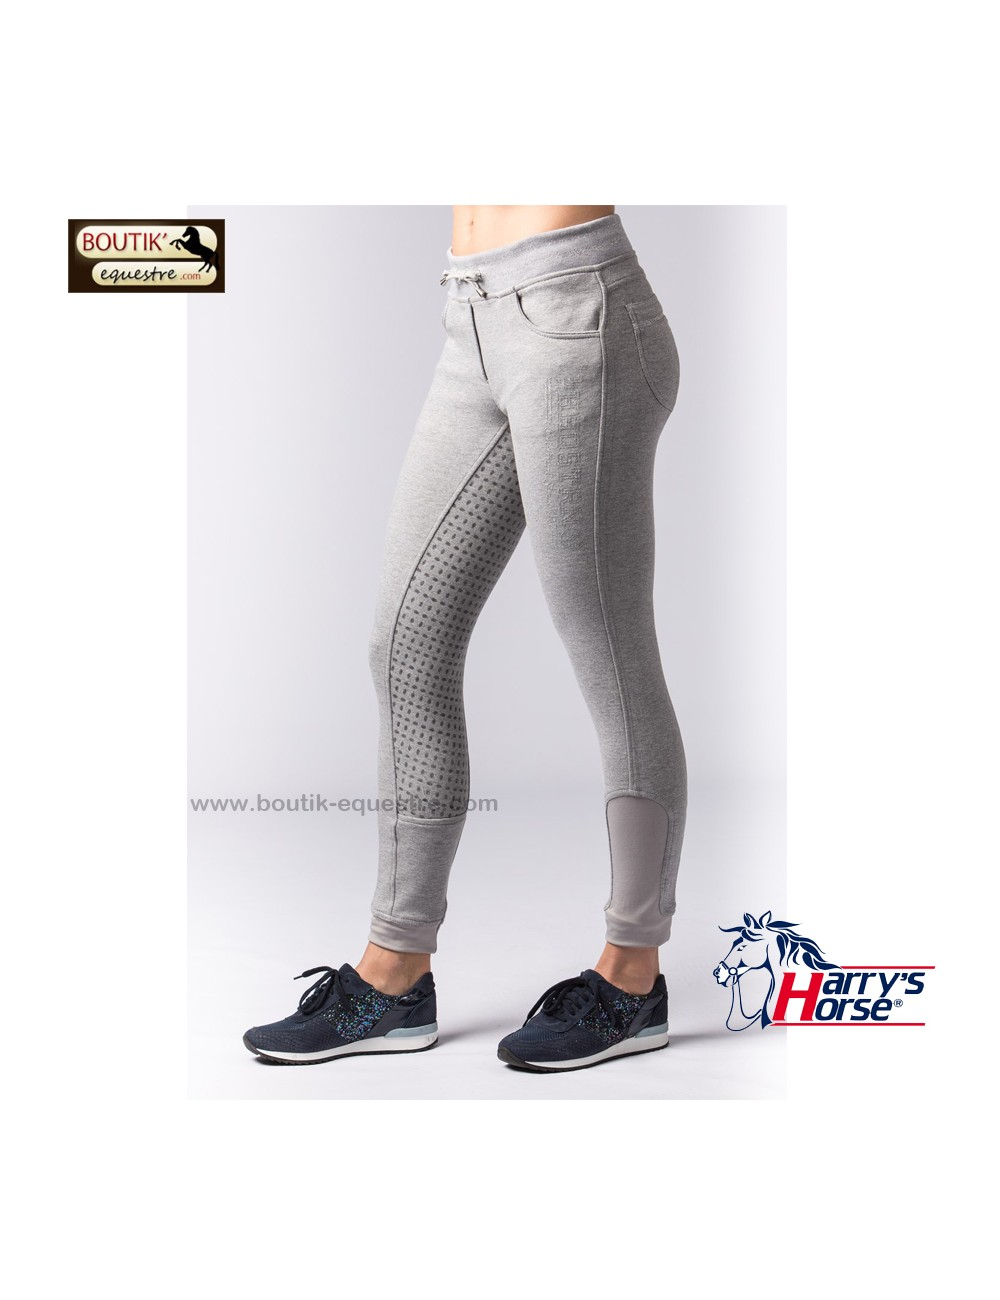 Pantalon Harry s horse Jazz